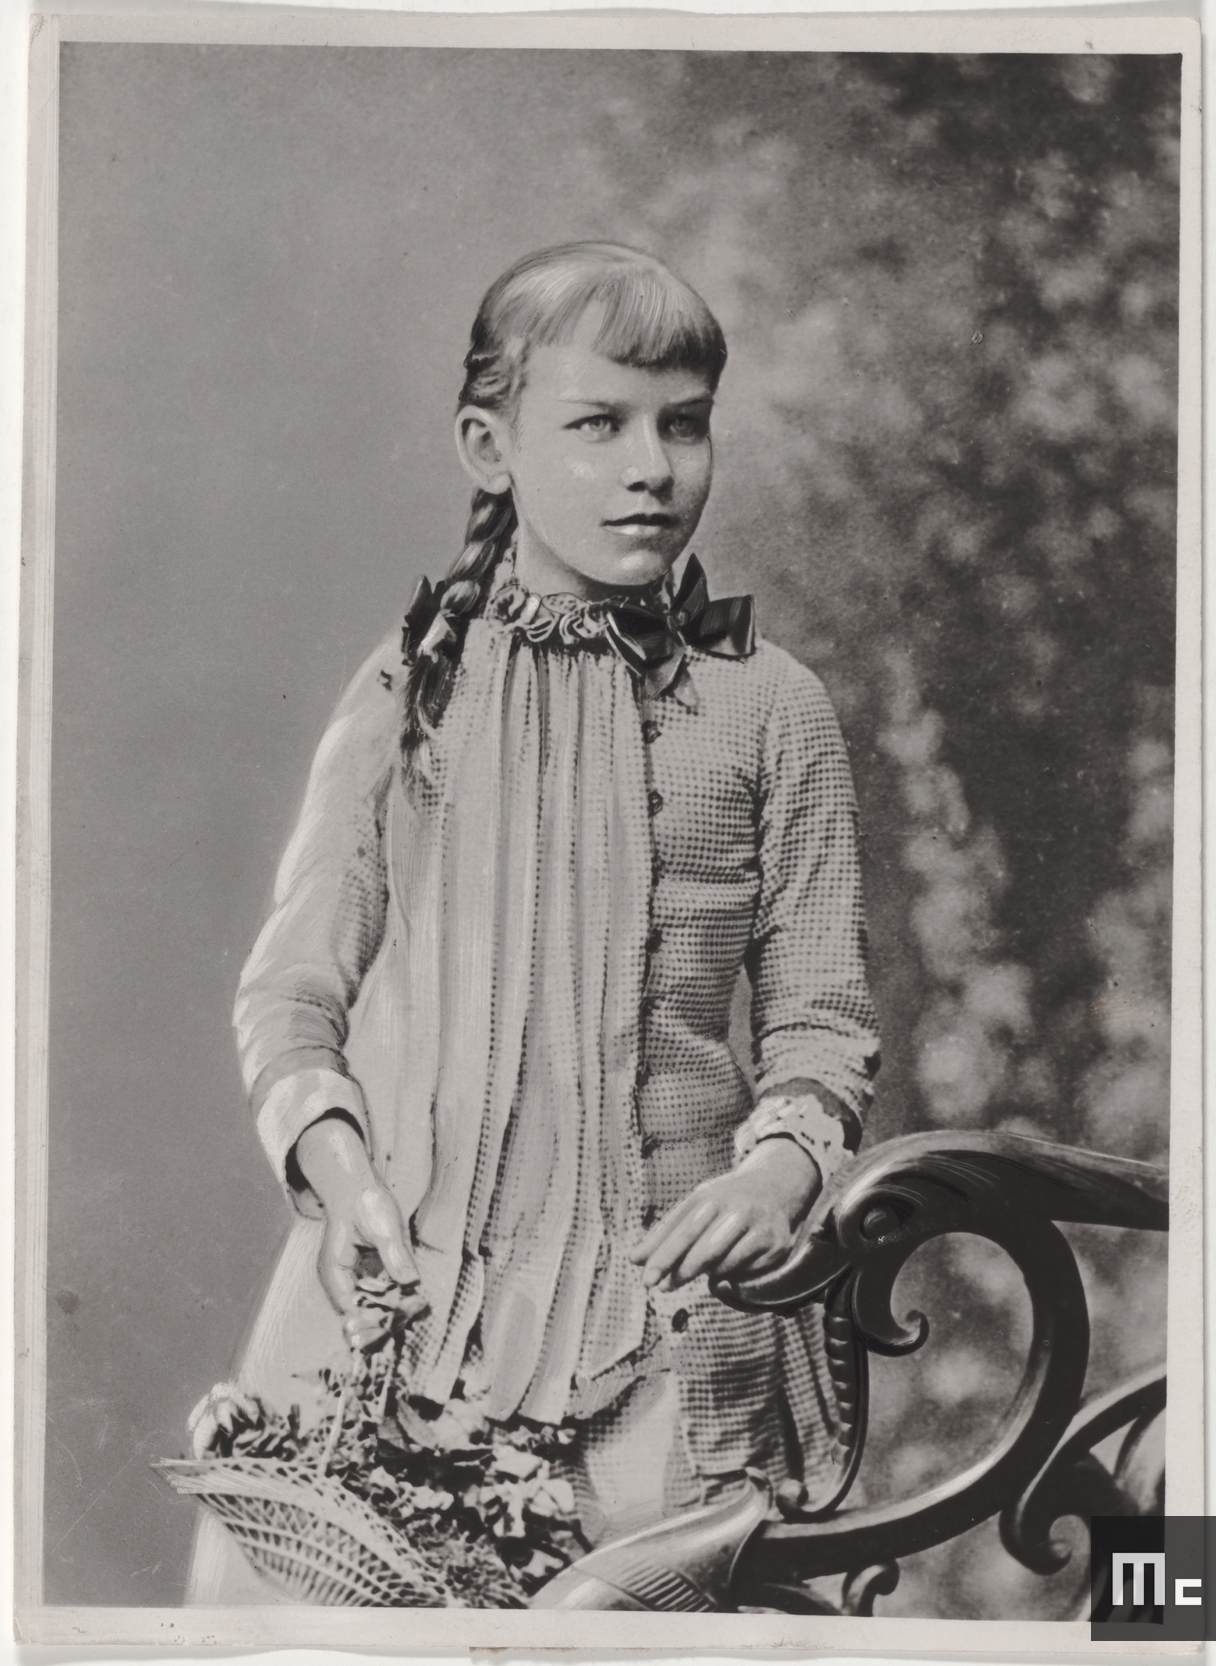 Andzaz Zorawska, Maria Sklodowska's pupil, from 1886 to 1889 (Source : Musée Curie ; coll. ACJC)